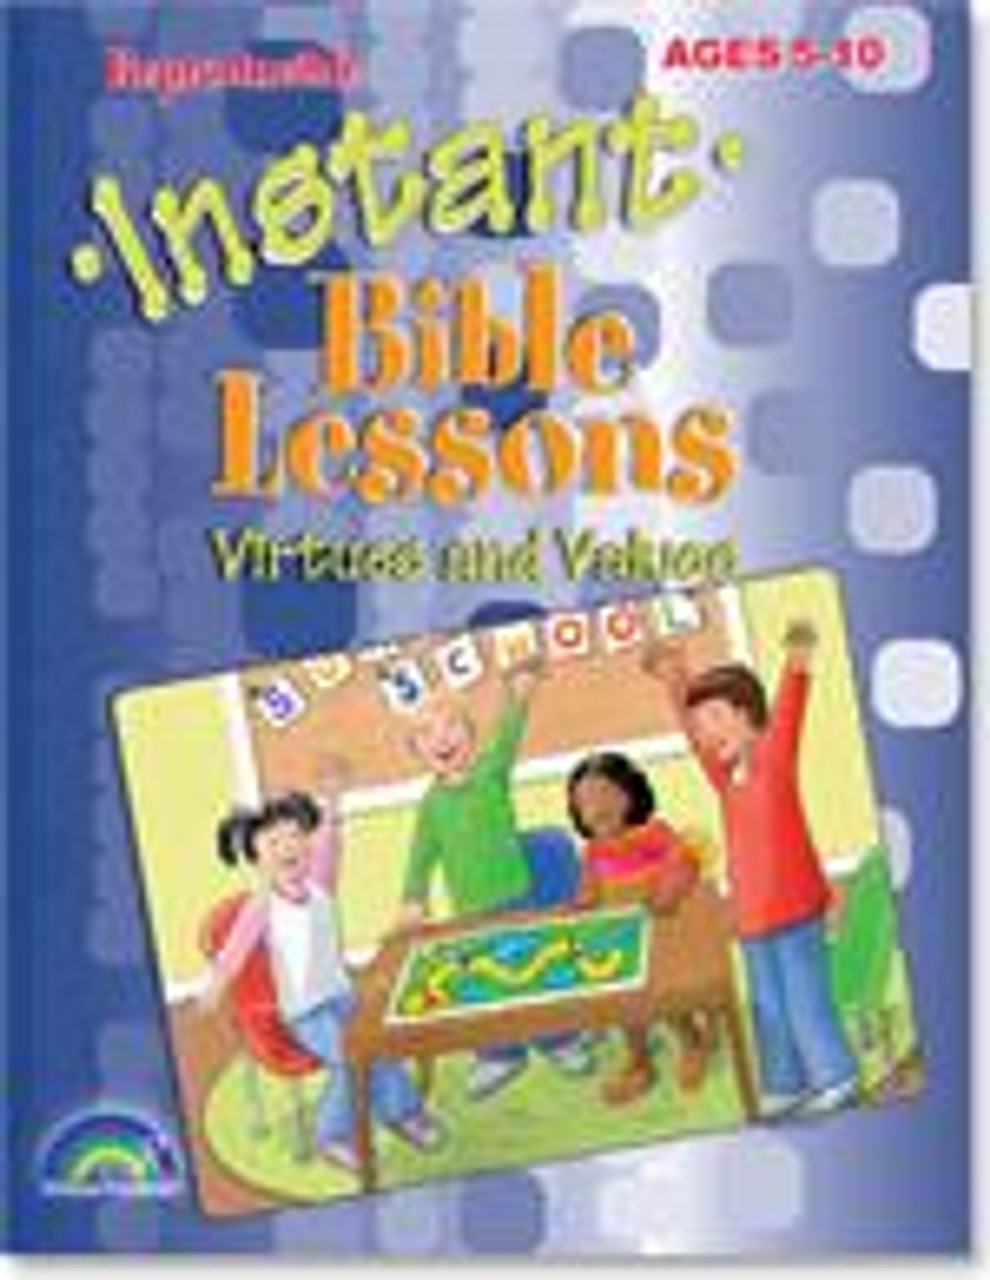 Instant Bible Lessons for Ages 5-10 Virtues and Values